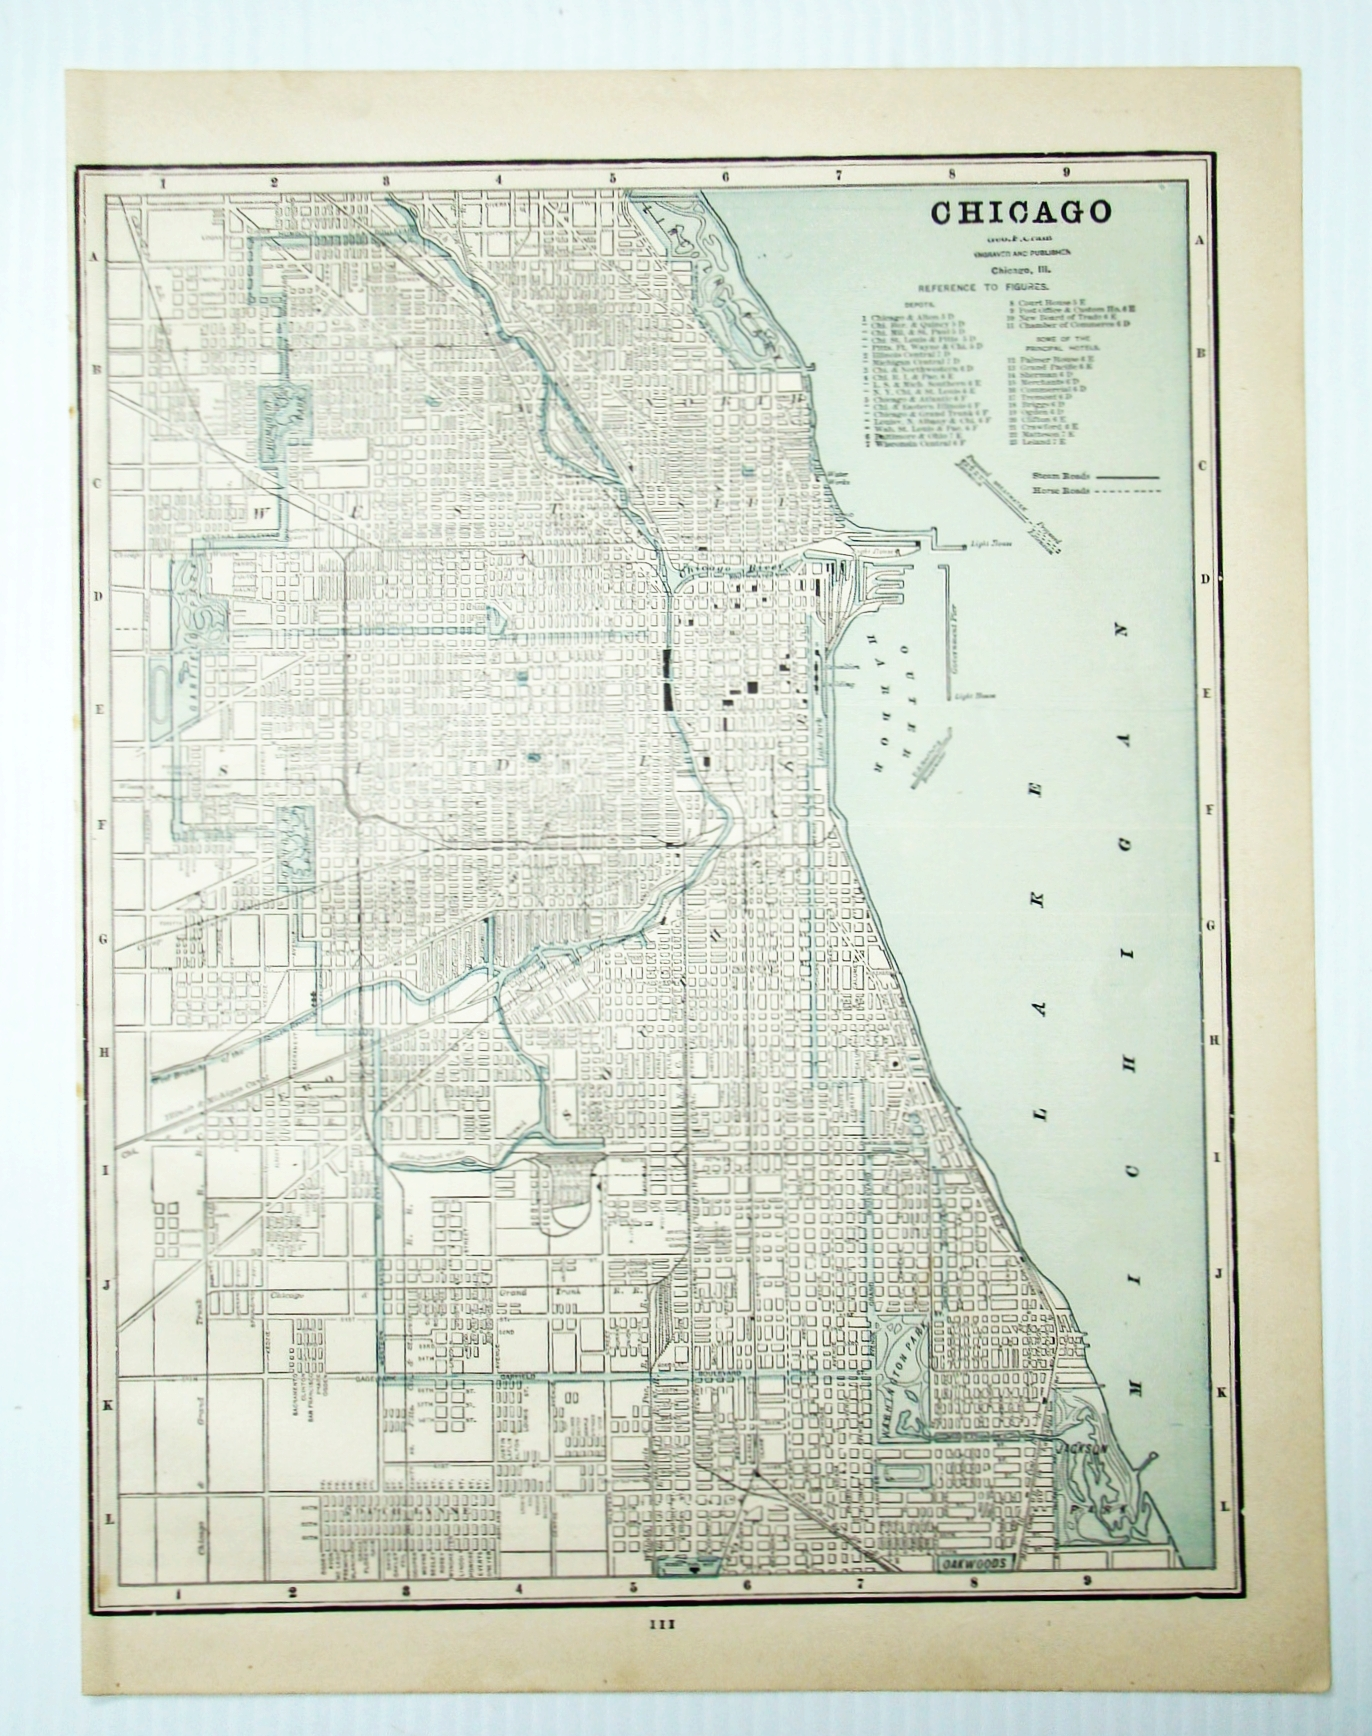 Image for 1889 Color City Map of Chicago, Illinois (IL)